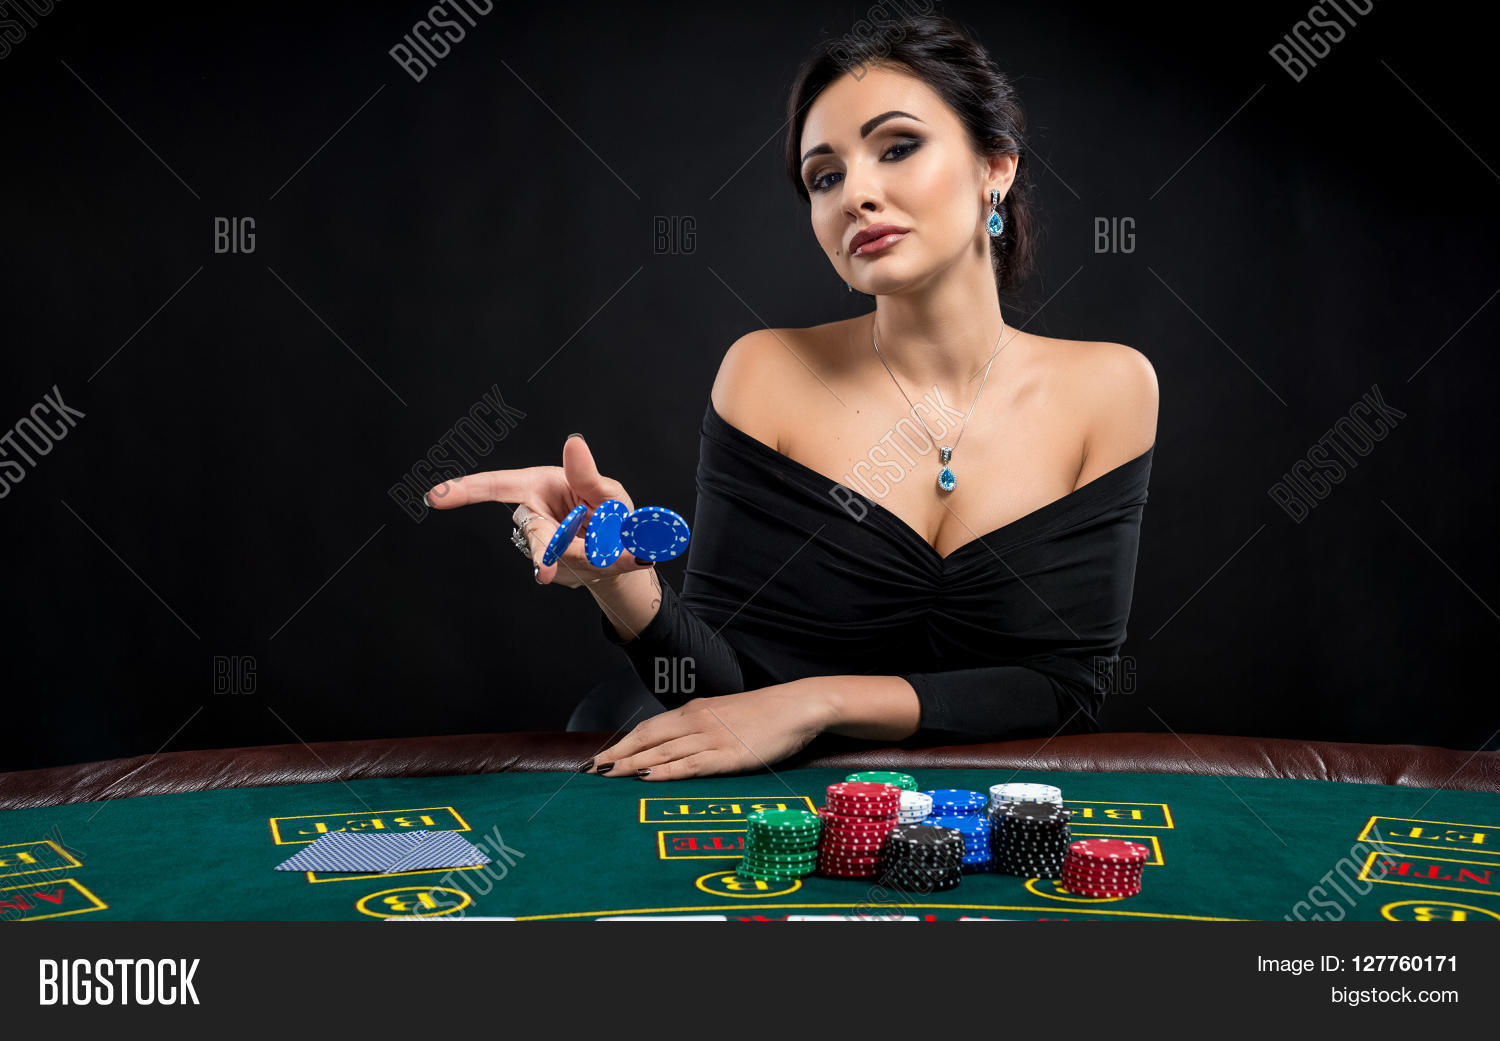 Sexy Woman Poker Cards Chips Image Amp Photo Bigstock